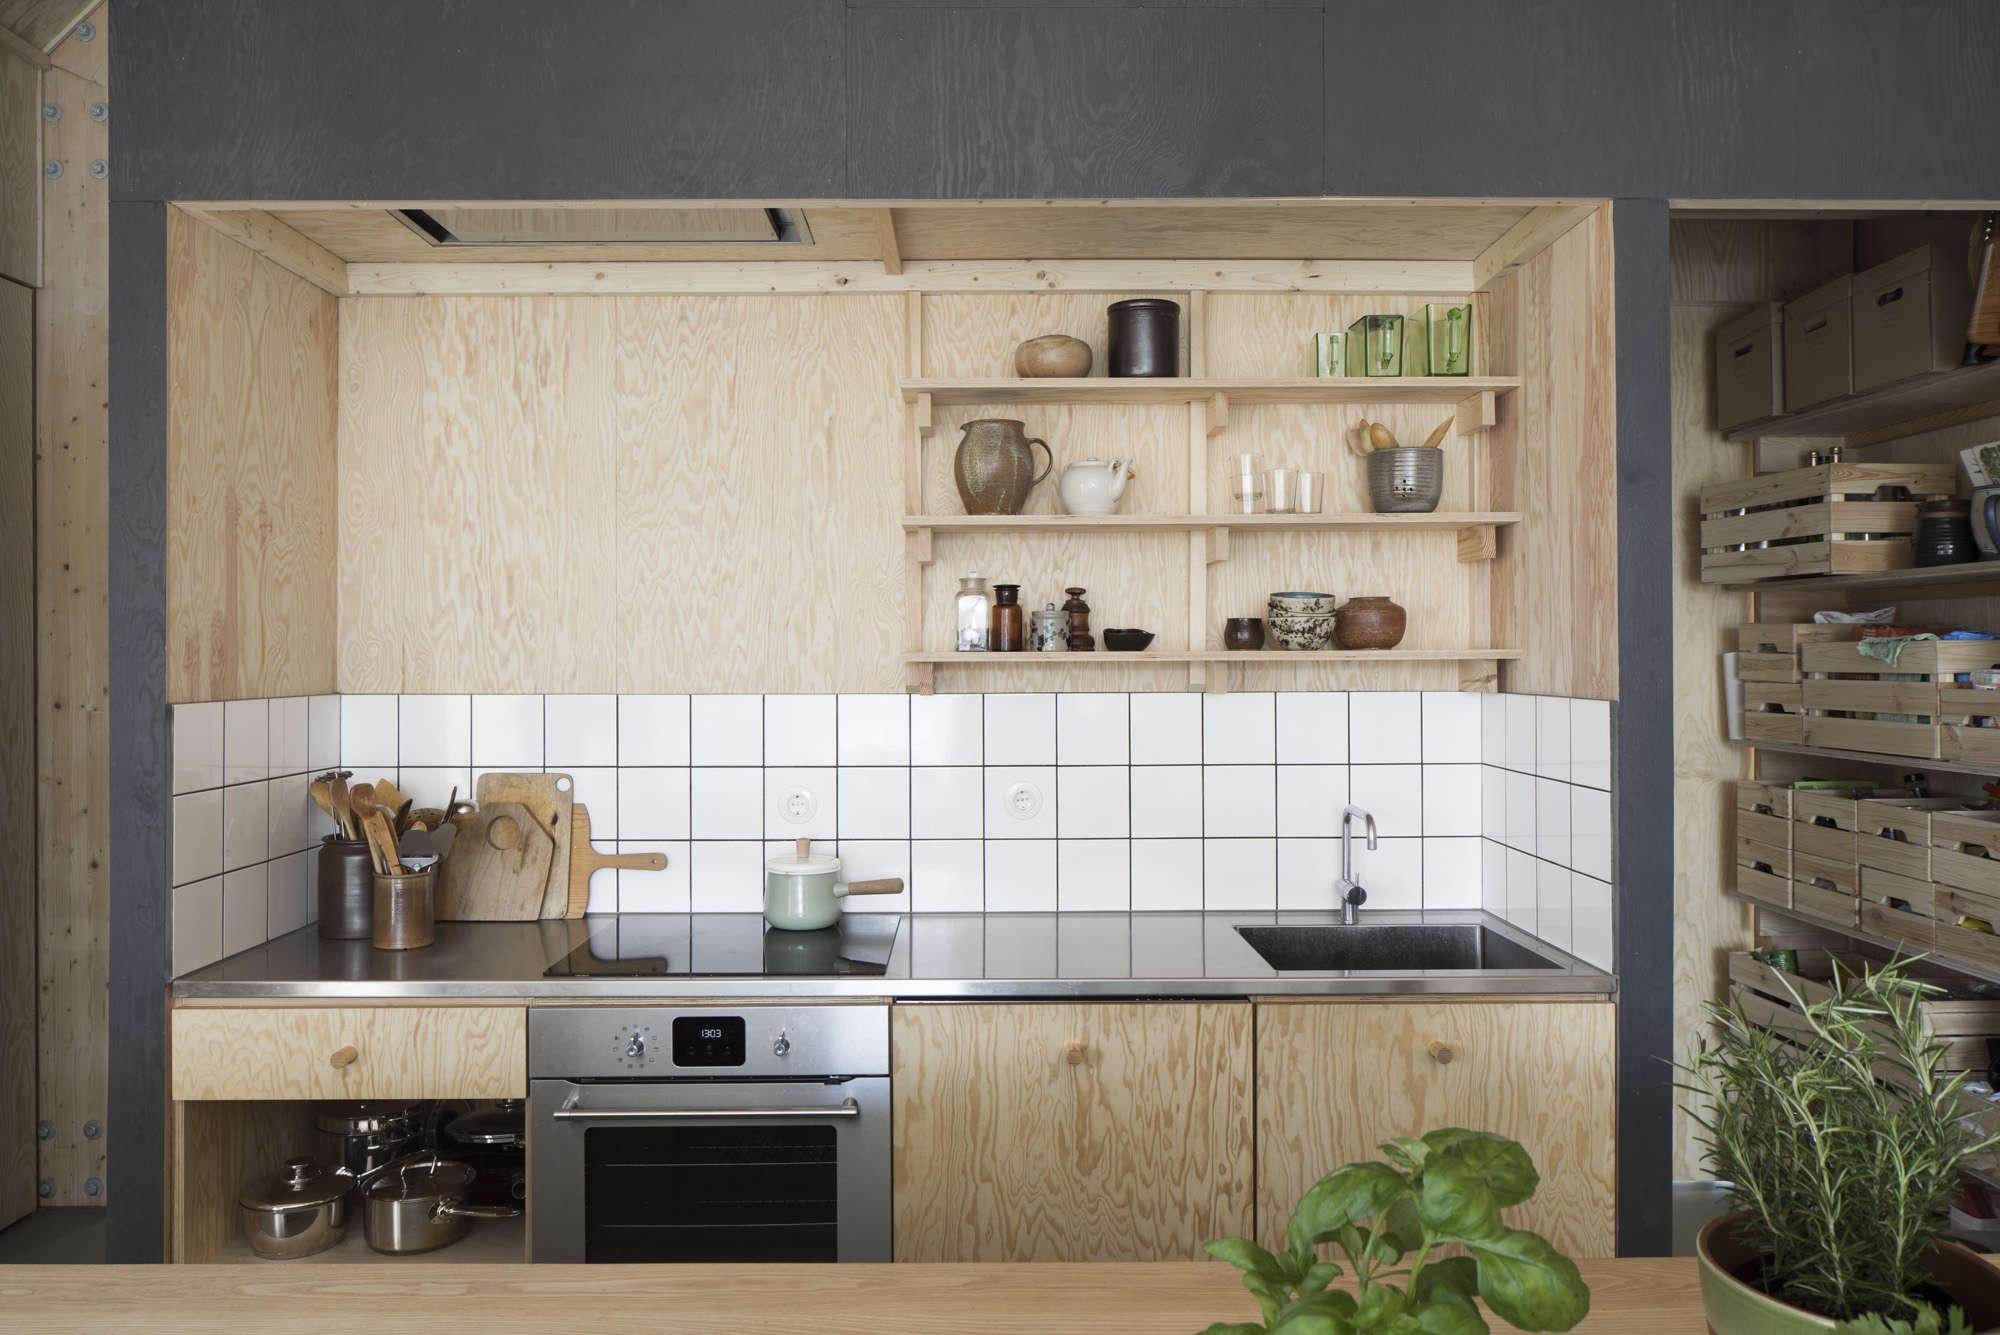 A tiny kitchen in southern Sweden with an electric cooktop that almost disappears on the stainless counter from Kitchen of the Week: A Cost-Conscious Kitchen in Sweden.